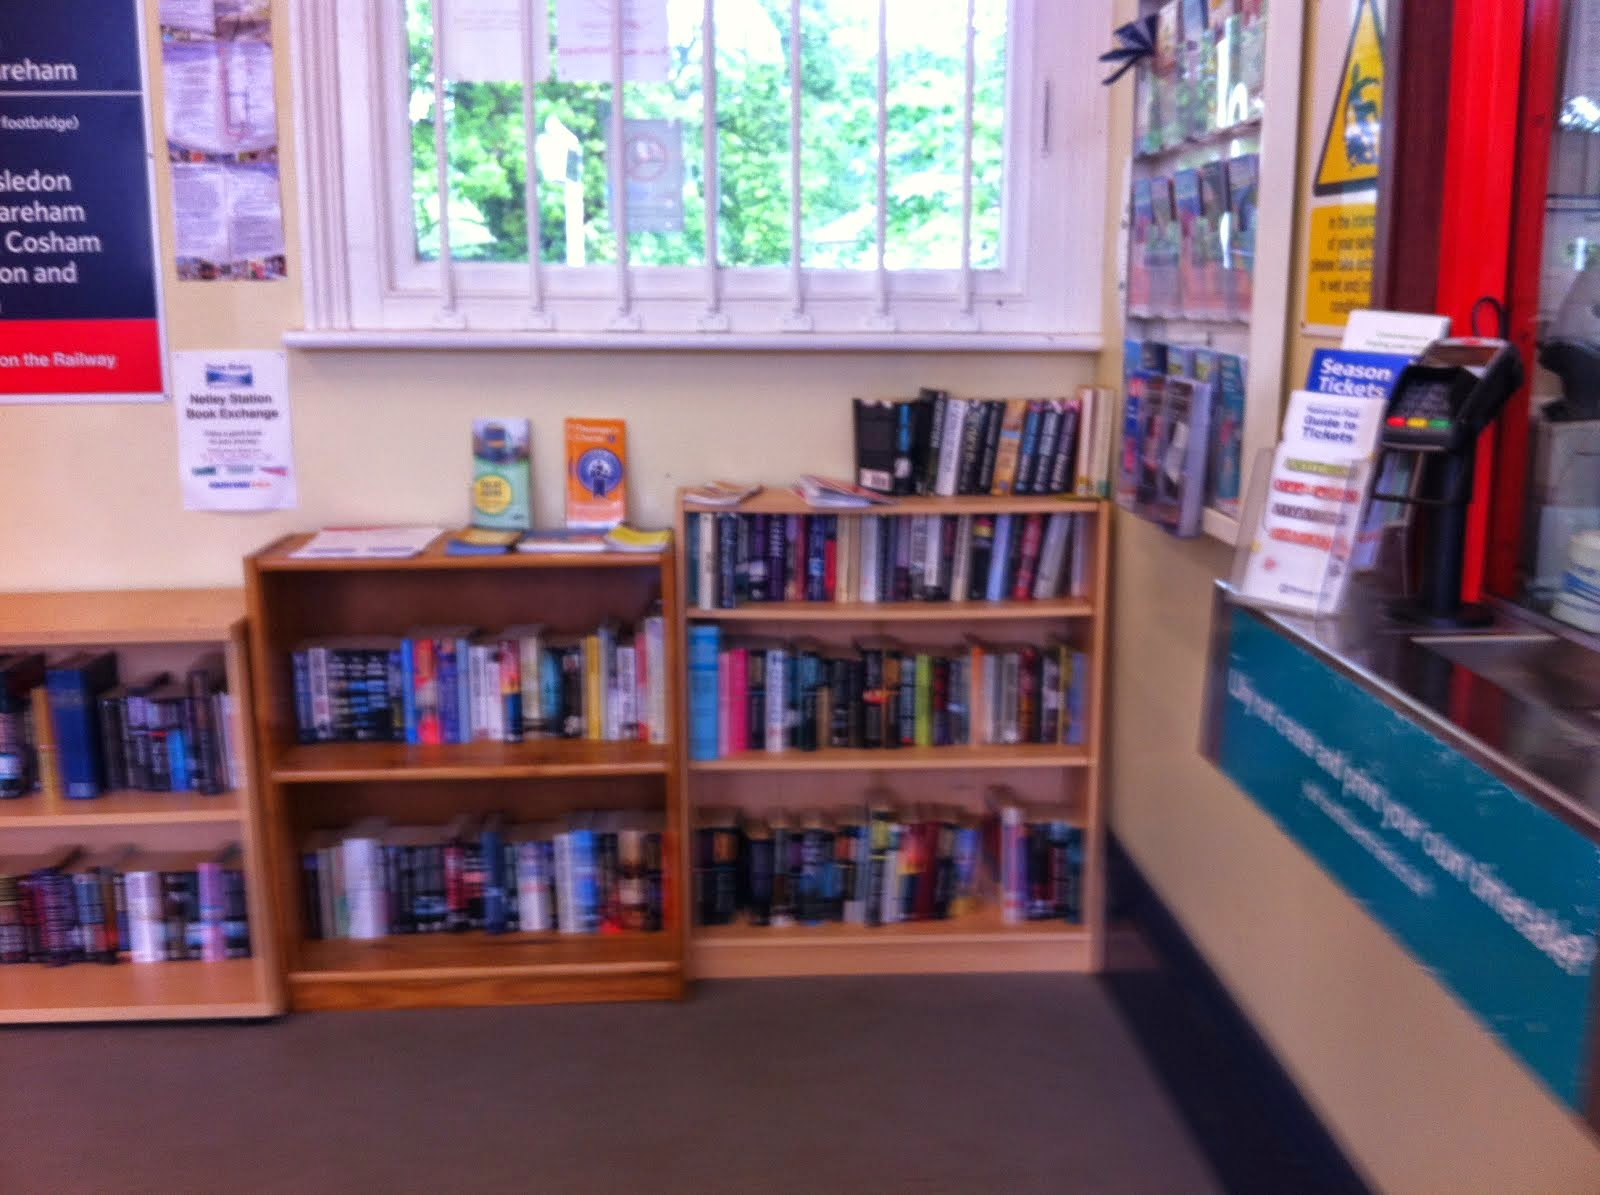 So civilised. Netley Station's own library...